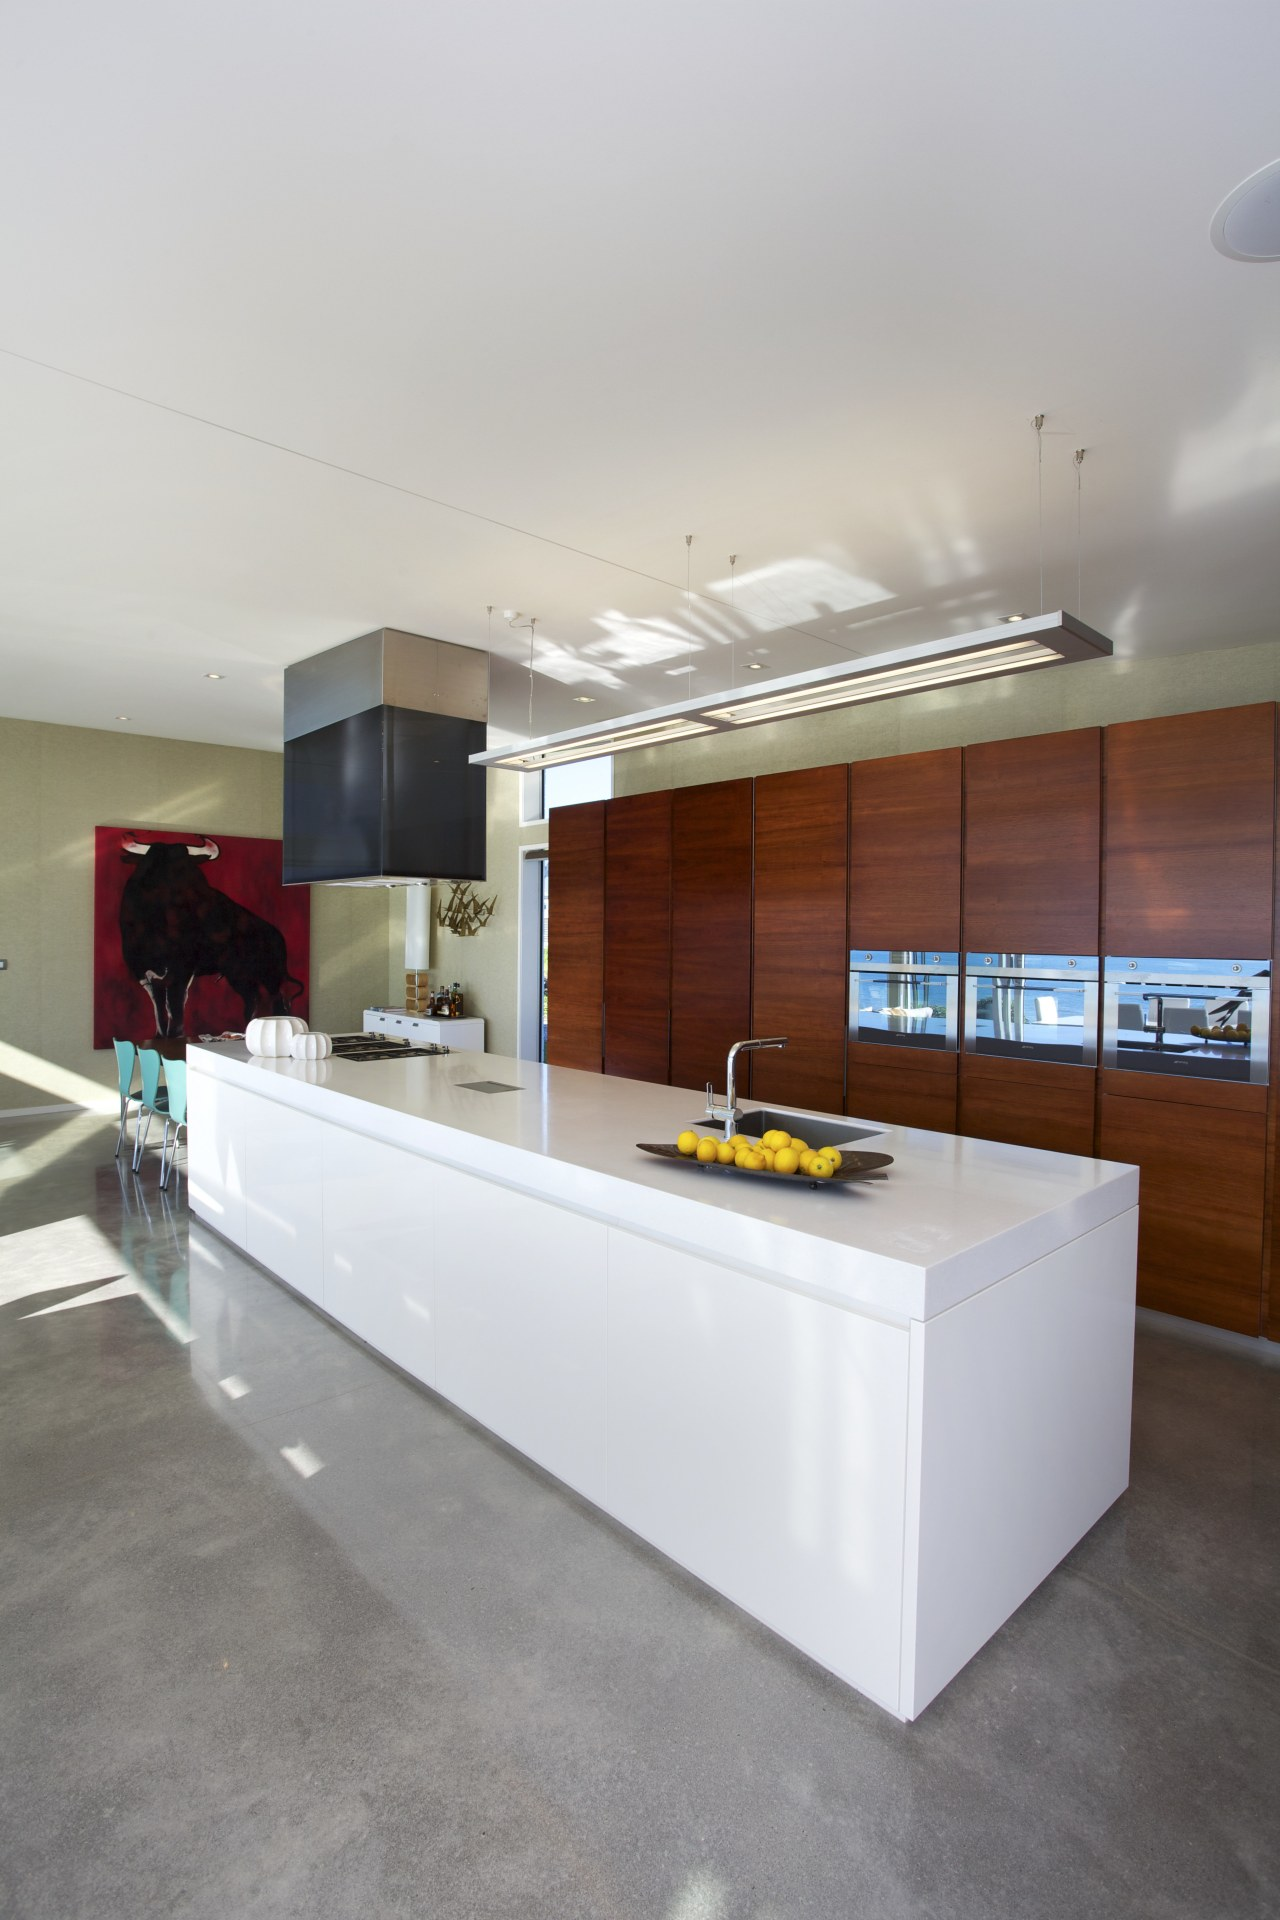 Timber cabinets conceal storage, a bar and fridge-freezer. architecture, countertop, floor, house, interior design, kitchen, gray, white